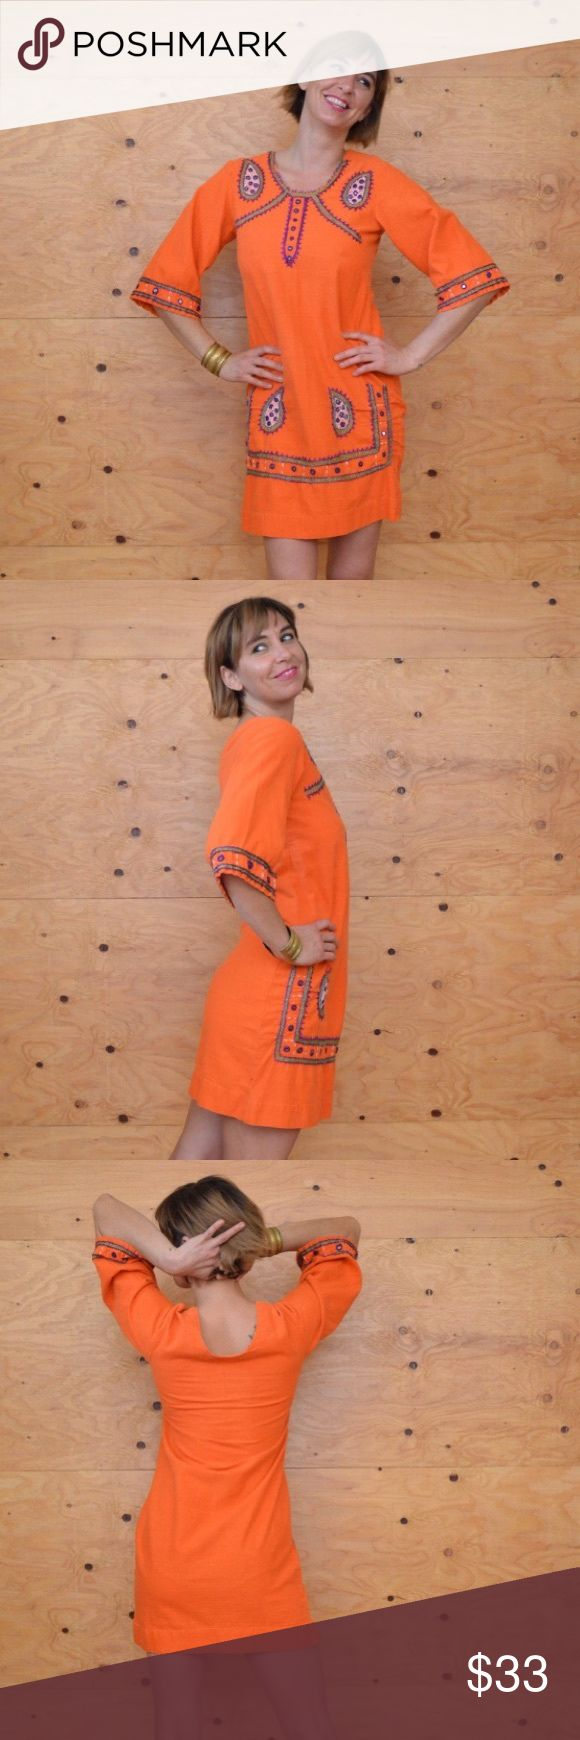 Beautiful Embroidered Orange India Tunic Dress S DESCRIPTION.... Beautifully orange cotton indian dress with lovely purple green and white paisley detail. 3/4 sleeves, scoop neck, a-line skirt, mini length, mirror detail. Great gypsy indian style and detail perfect for burning man or festival event. Dresses Mini